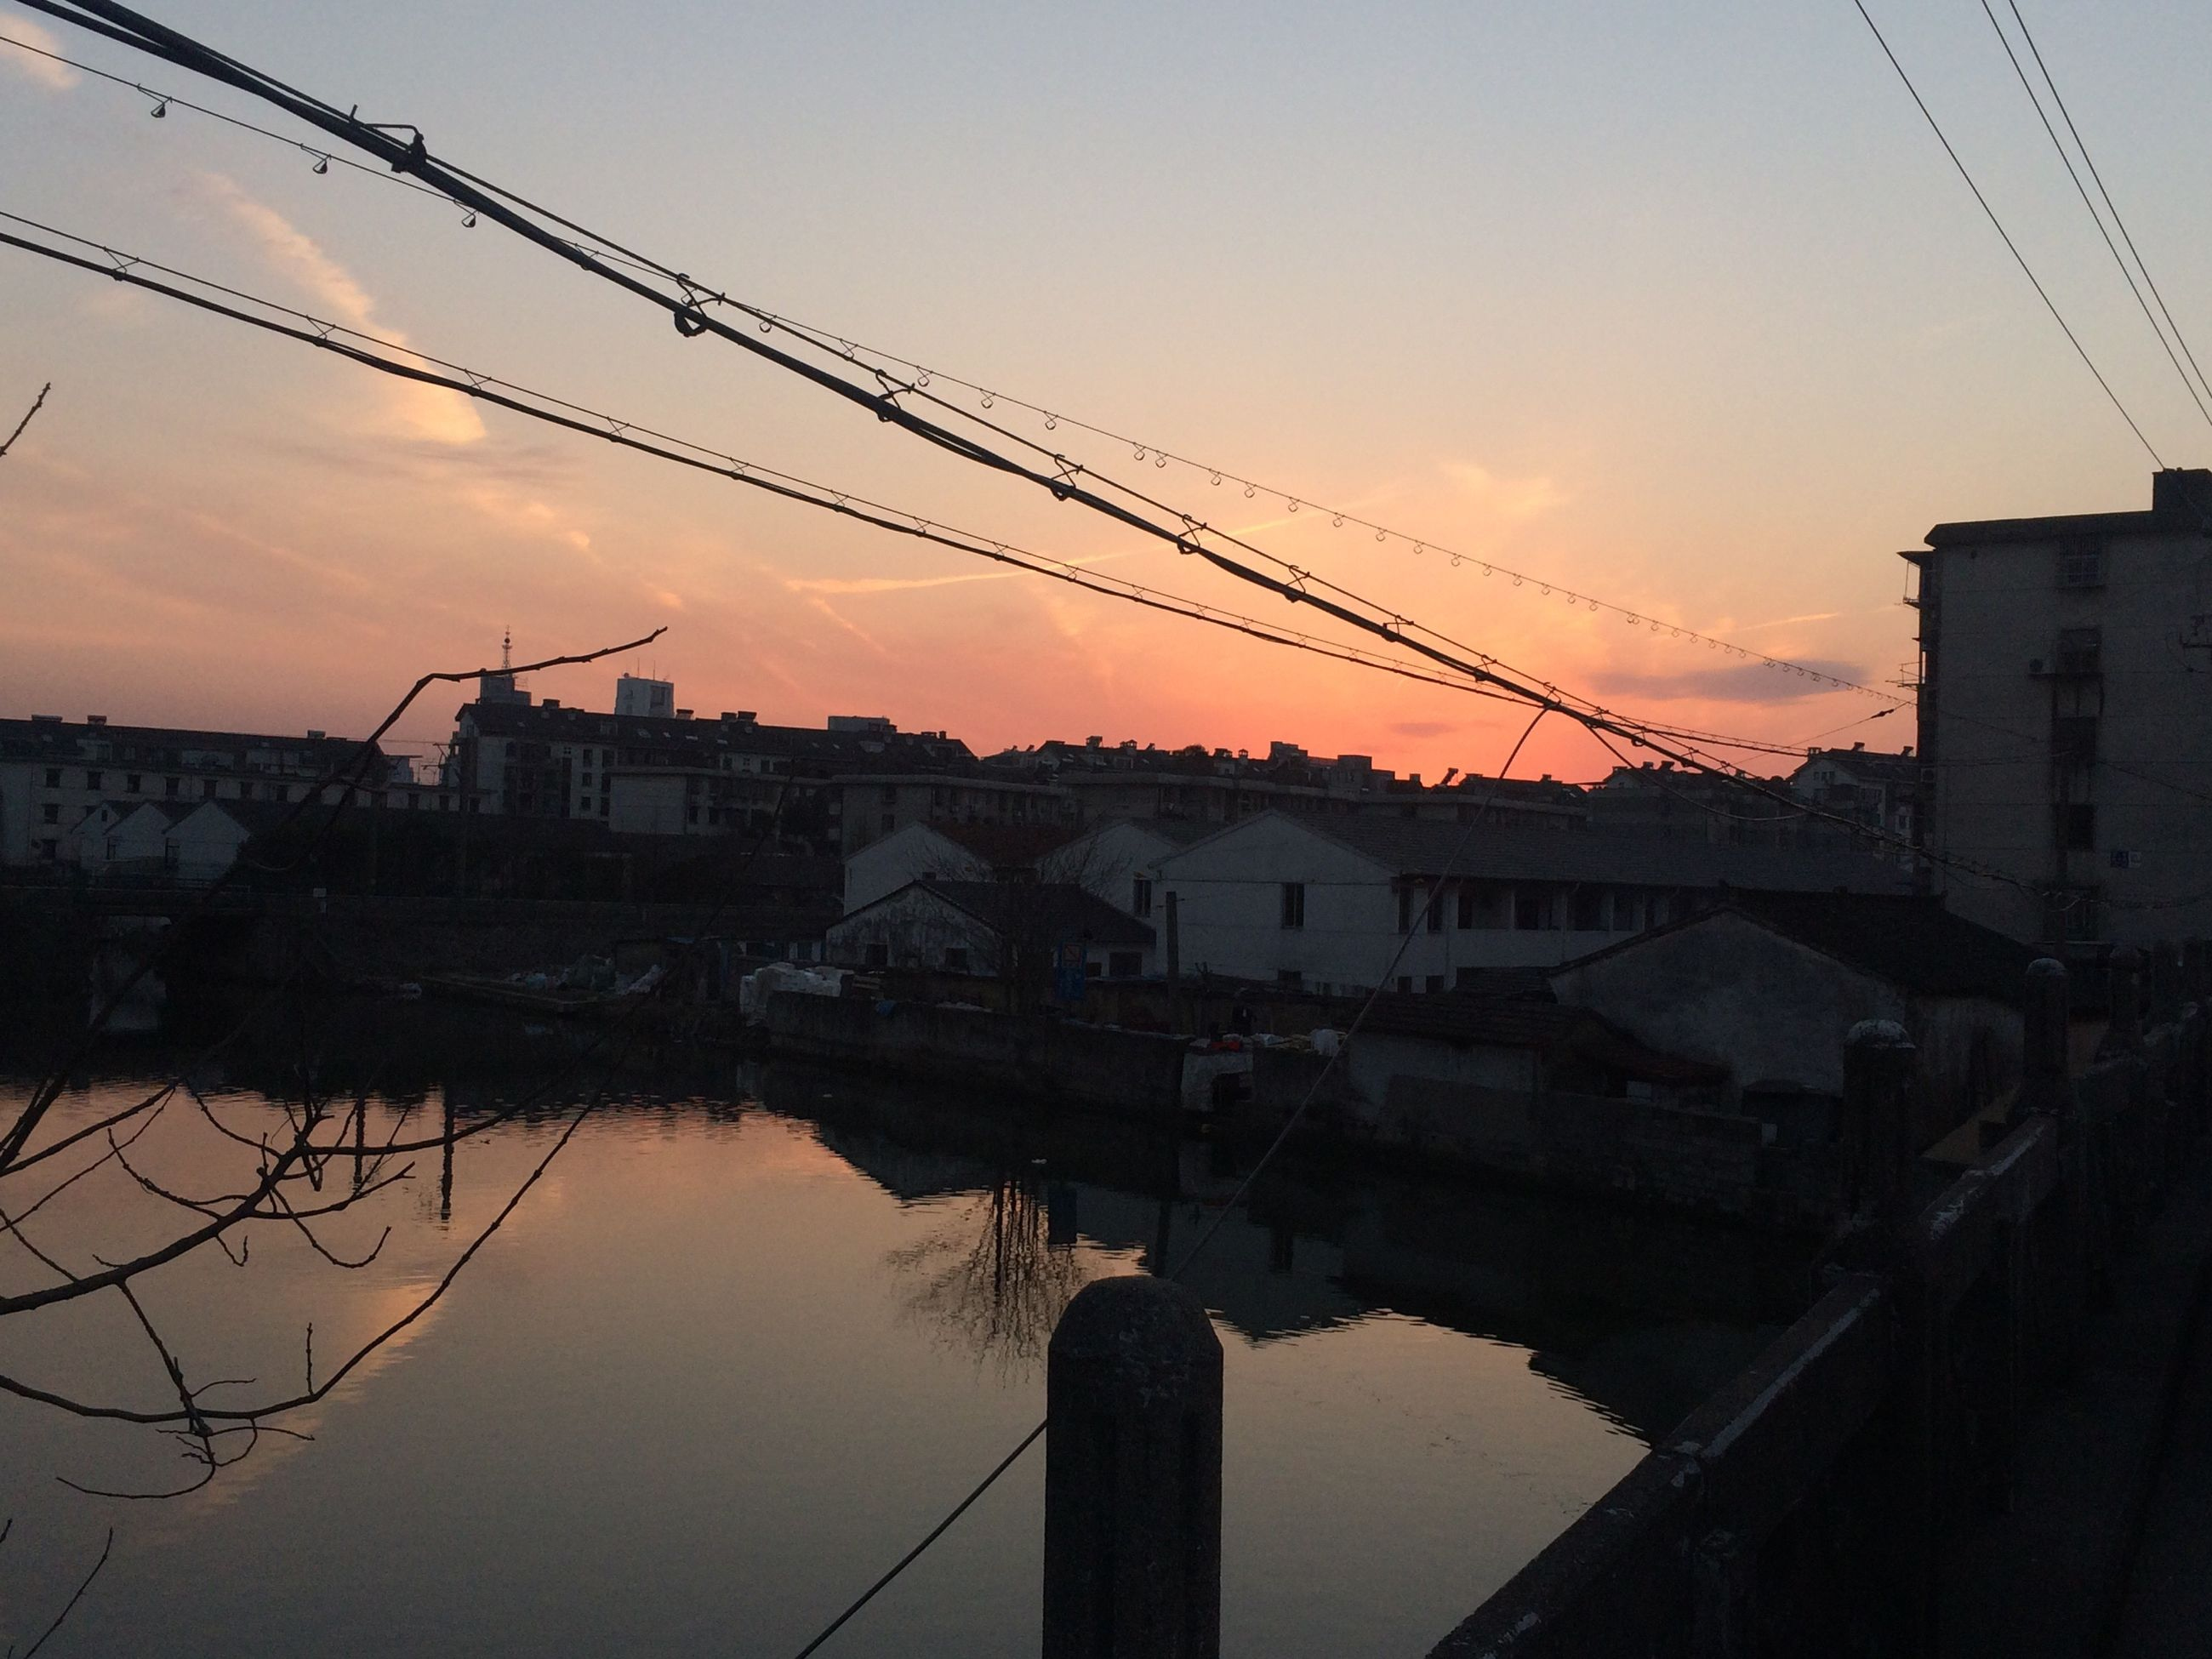 architecture, built structure, building exterior, sunset, water, sky, connection, power line, silhouette, electricity pylon, reflection, river, house, city, cable, residential structure, outdoors, residential building, no people, orange color